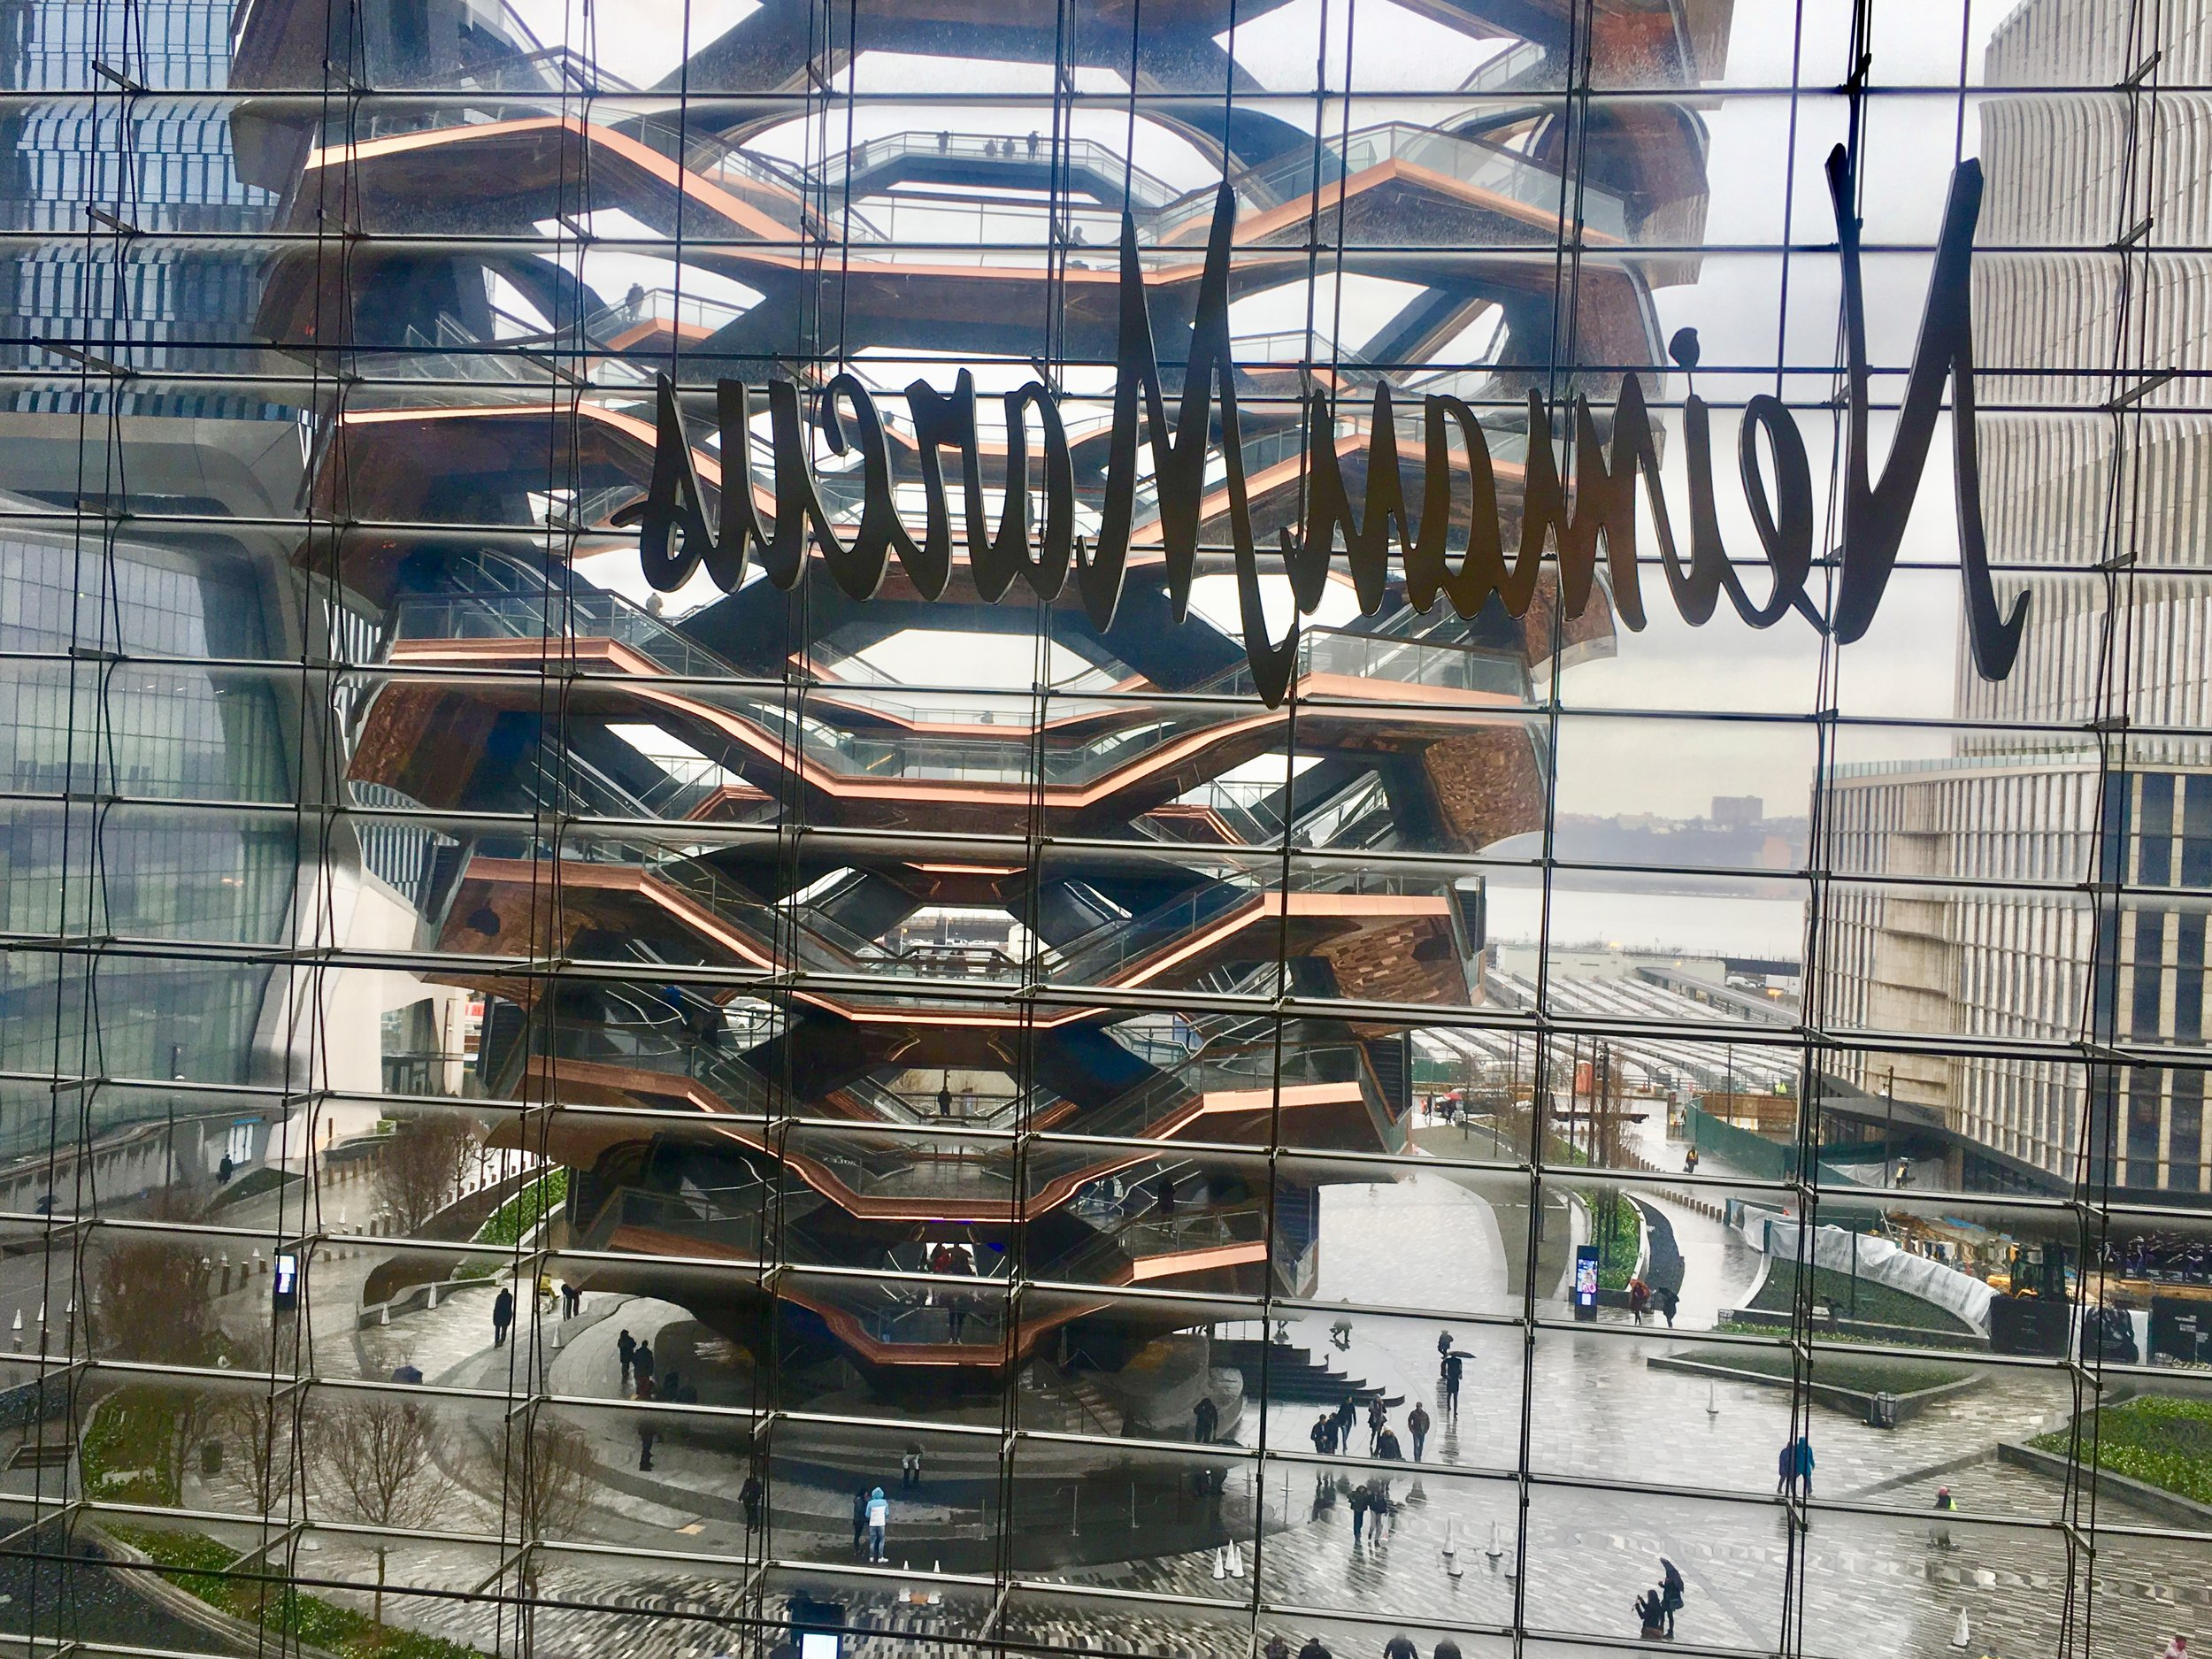 A view of The Vessel and the trains lined up in at Hudson Yards from the interior.